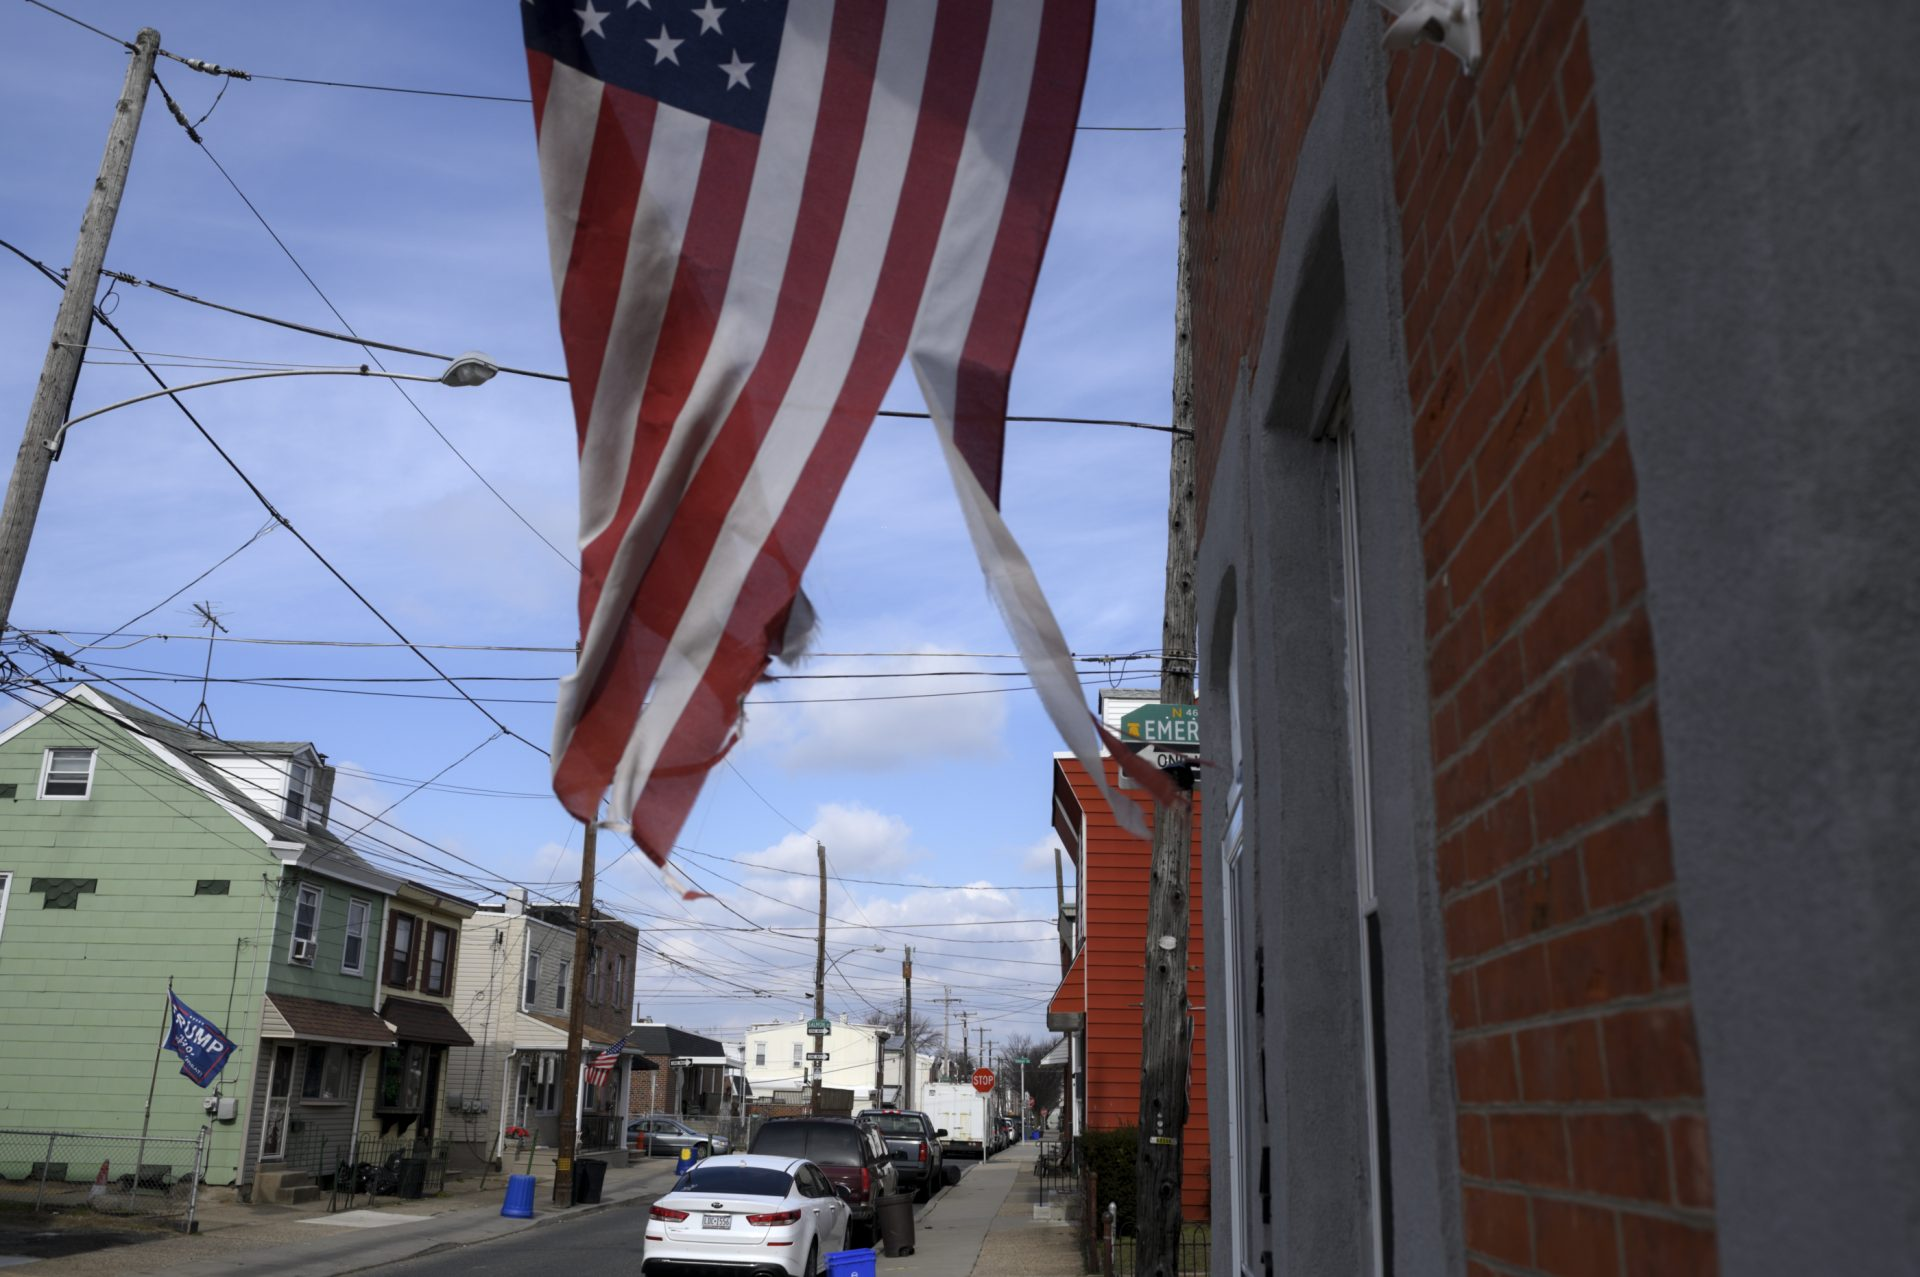 A torn American flag waves on a residential street in Bridesburg.